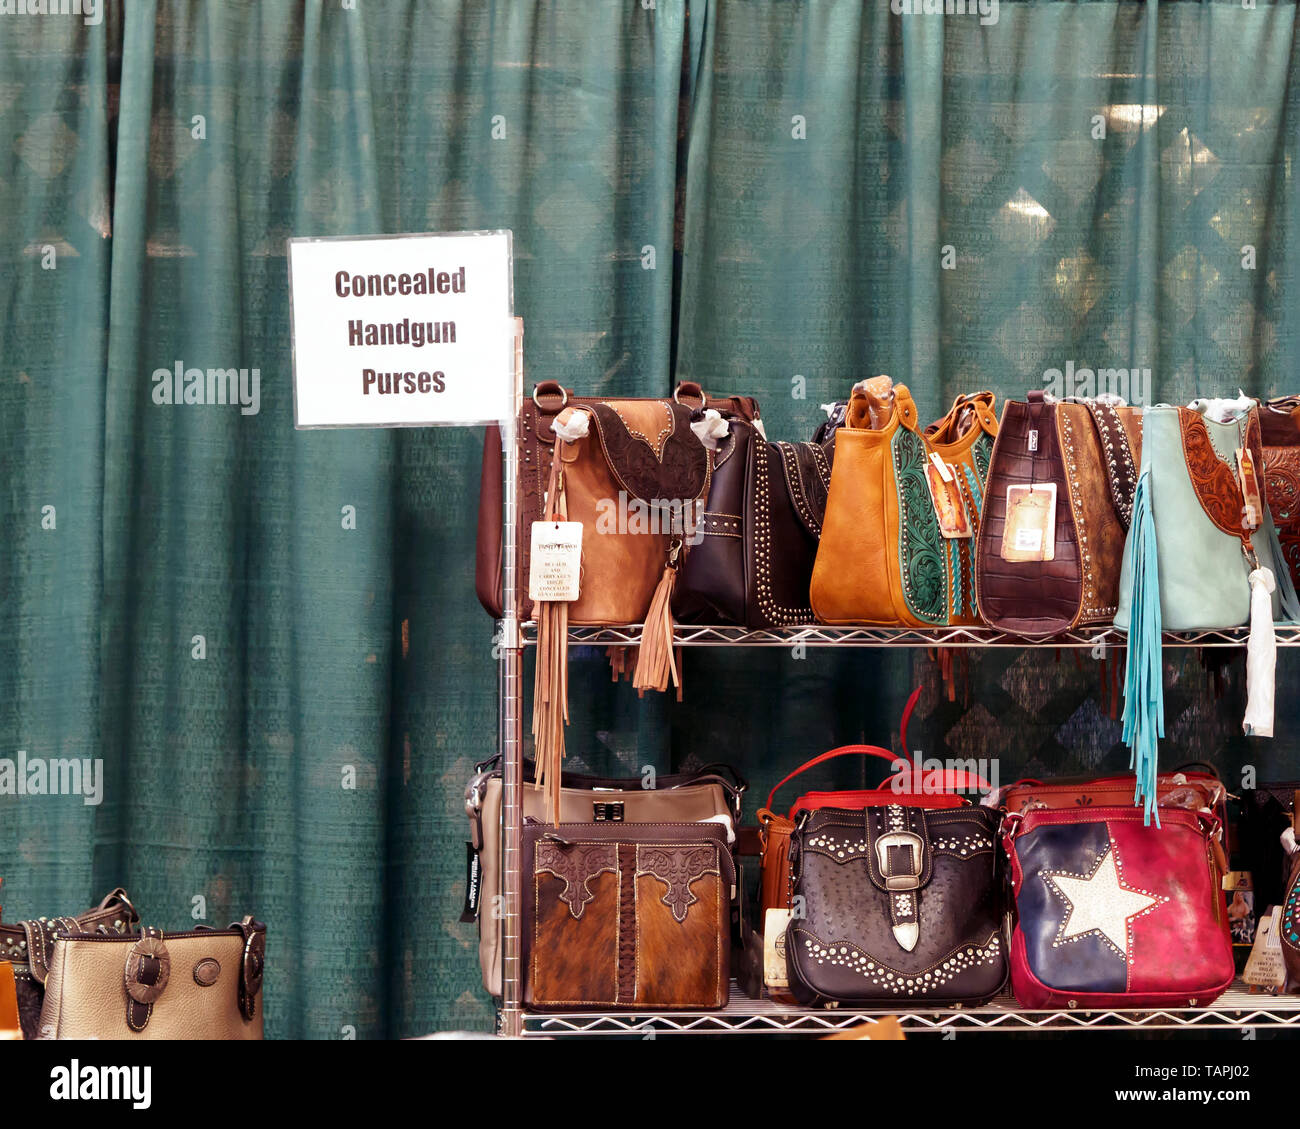 Concealed handgun purses for sale at the Country Peddler Show. Richard M. Borchard Regional Fairgrounds Robstown, Texas USA. Stock Photo